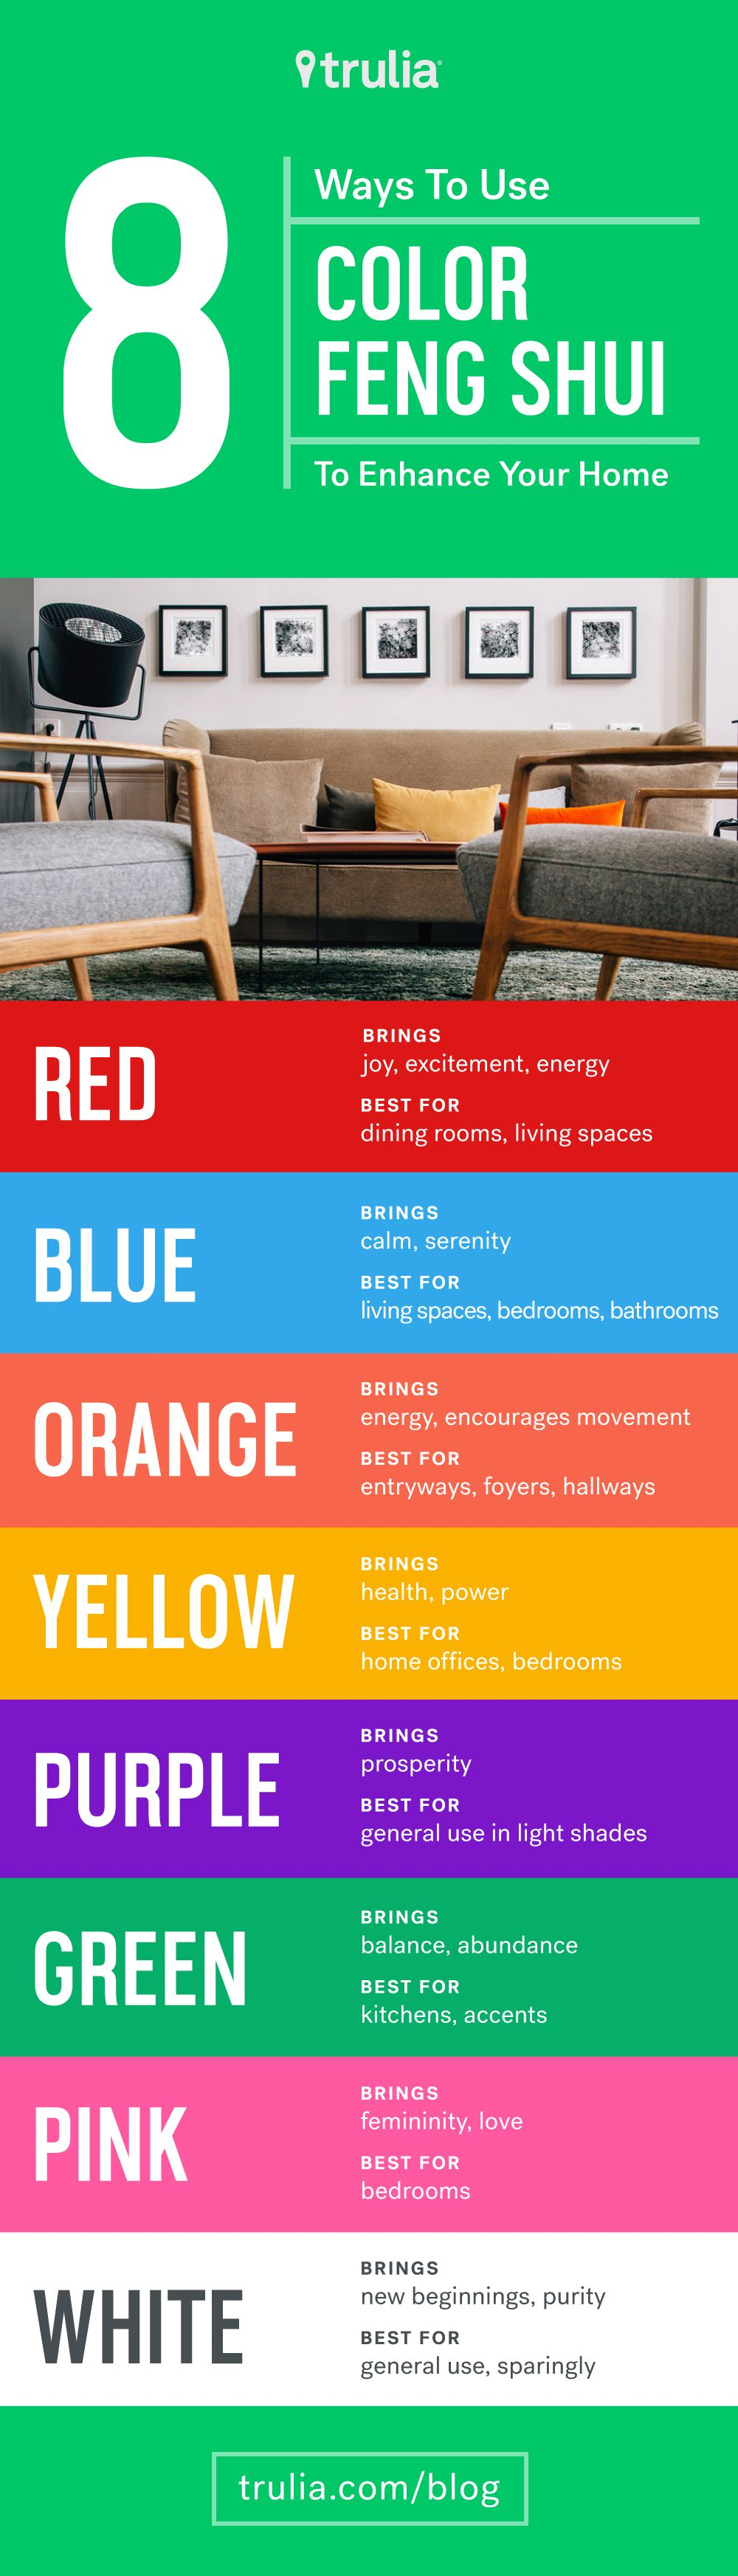 Feng Shui Farben Im Schlafzimmer 8 Reasons To Use Color Feng Shui To Enhance Your Home – Life At Home – Trulia Blog | Feng Shui, Feng Shui Schlafzimmer, Feng Shui Farben